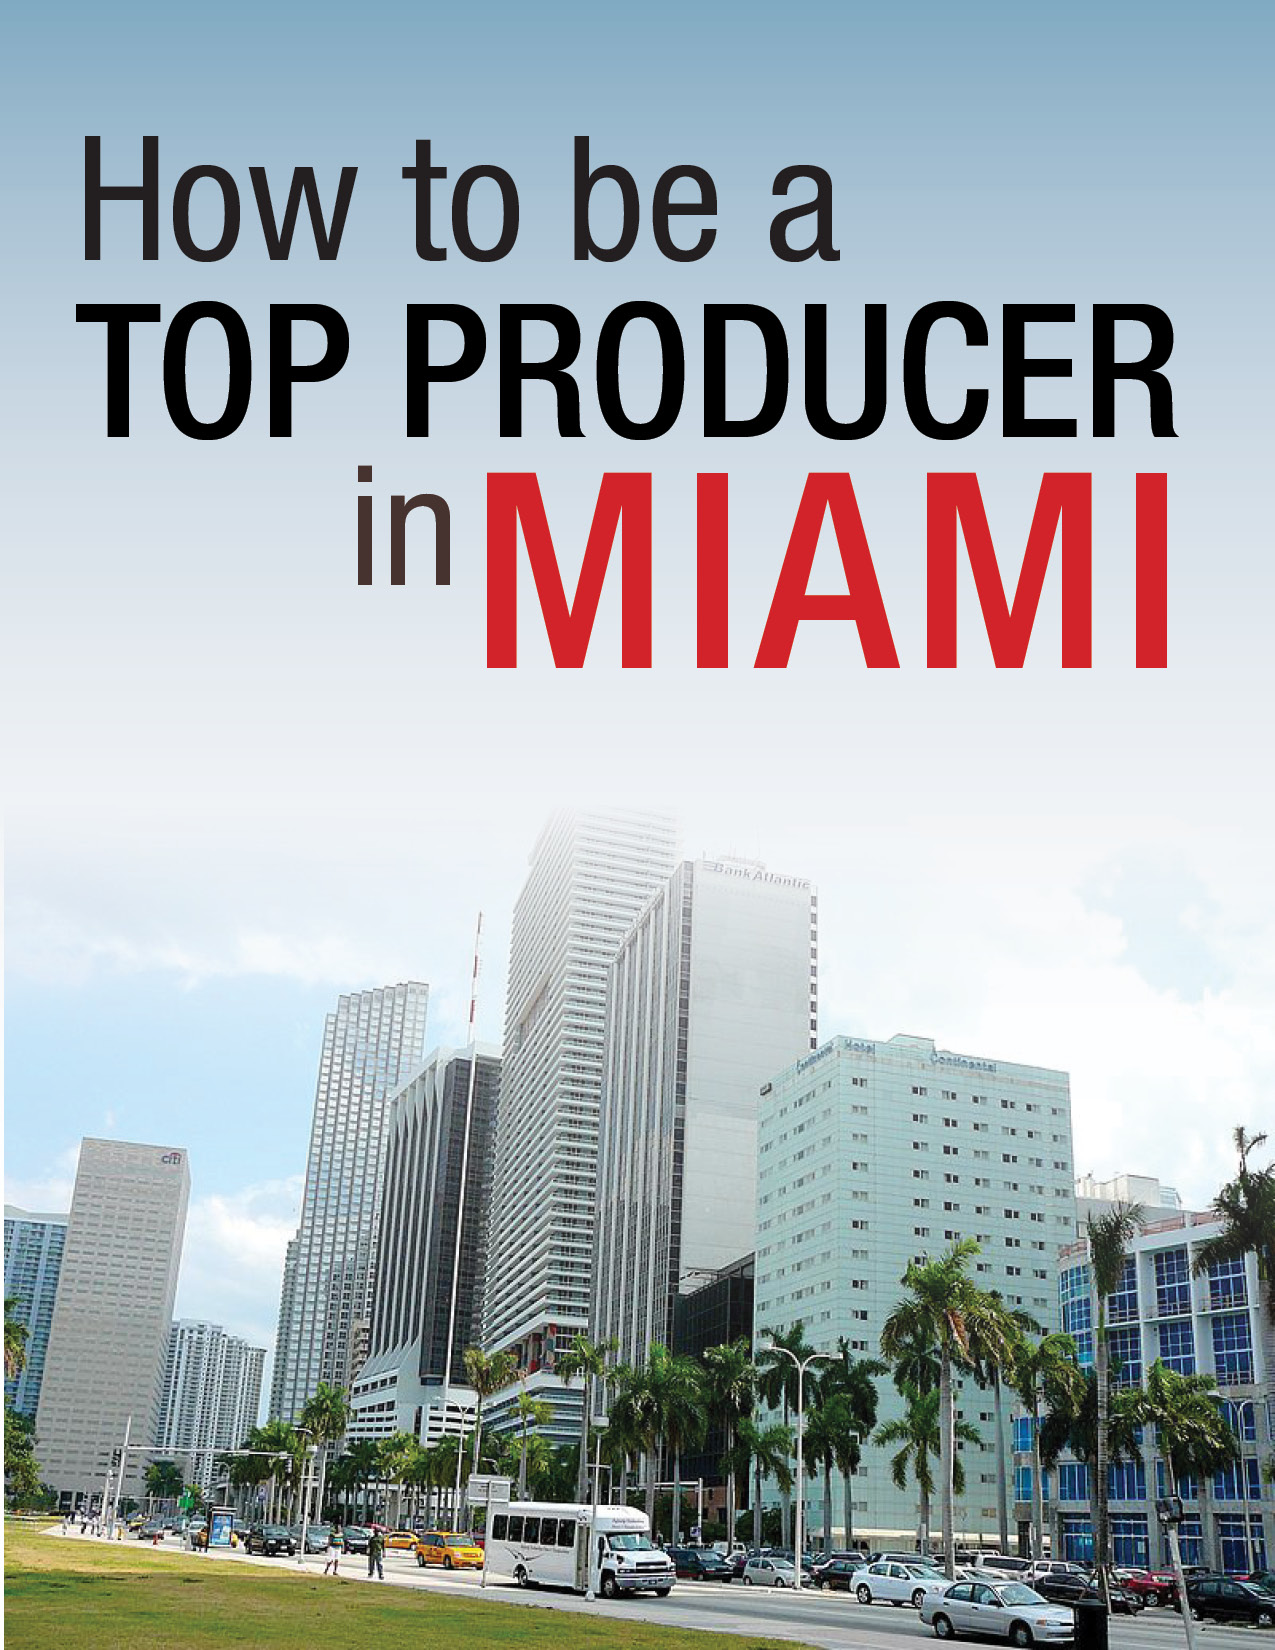 How To Be A Top Producer in Miami: Professionalism, Smart Marketing and Time Management - 2.17.14